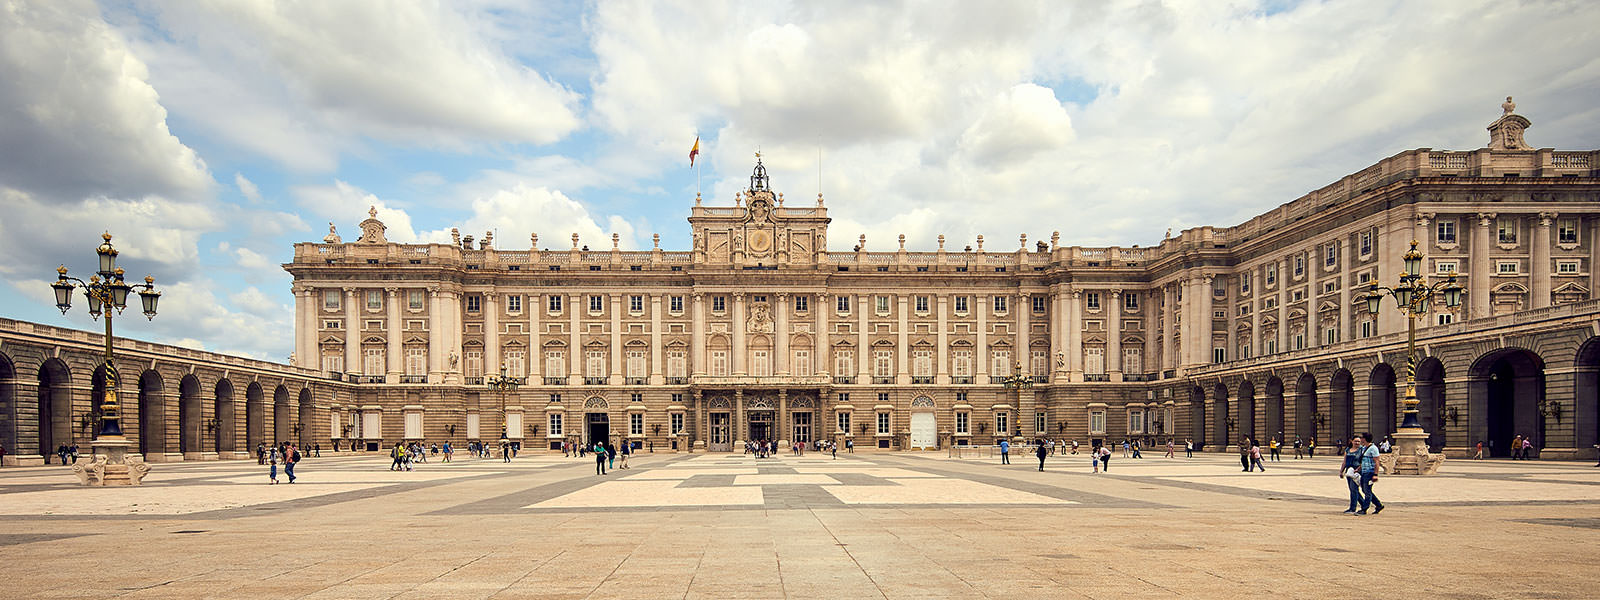 best-palace-madrid-location